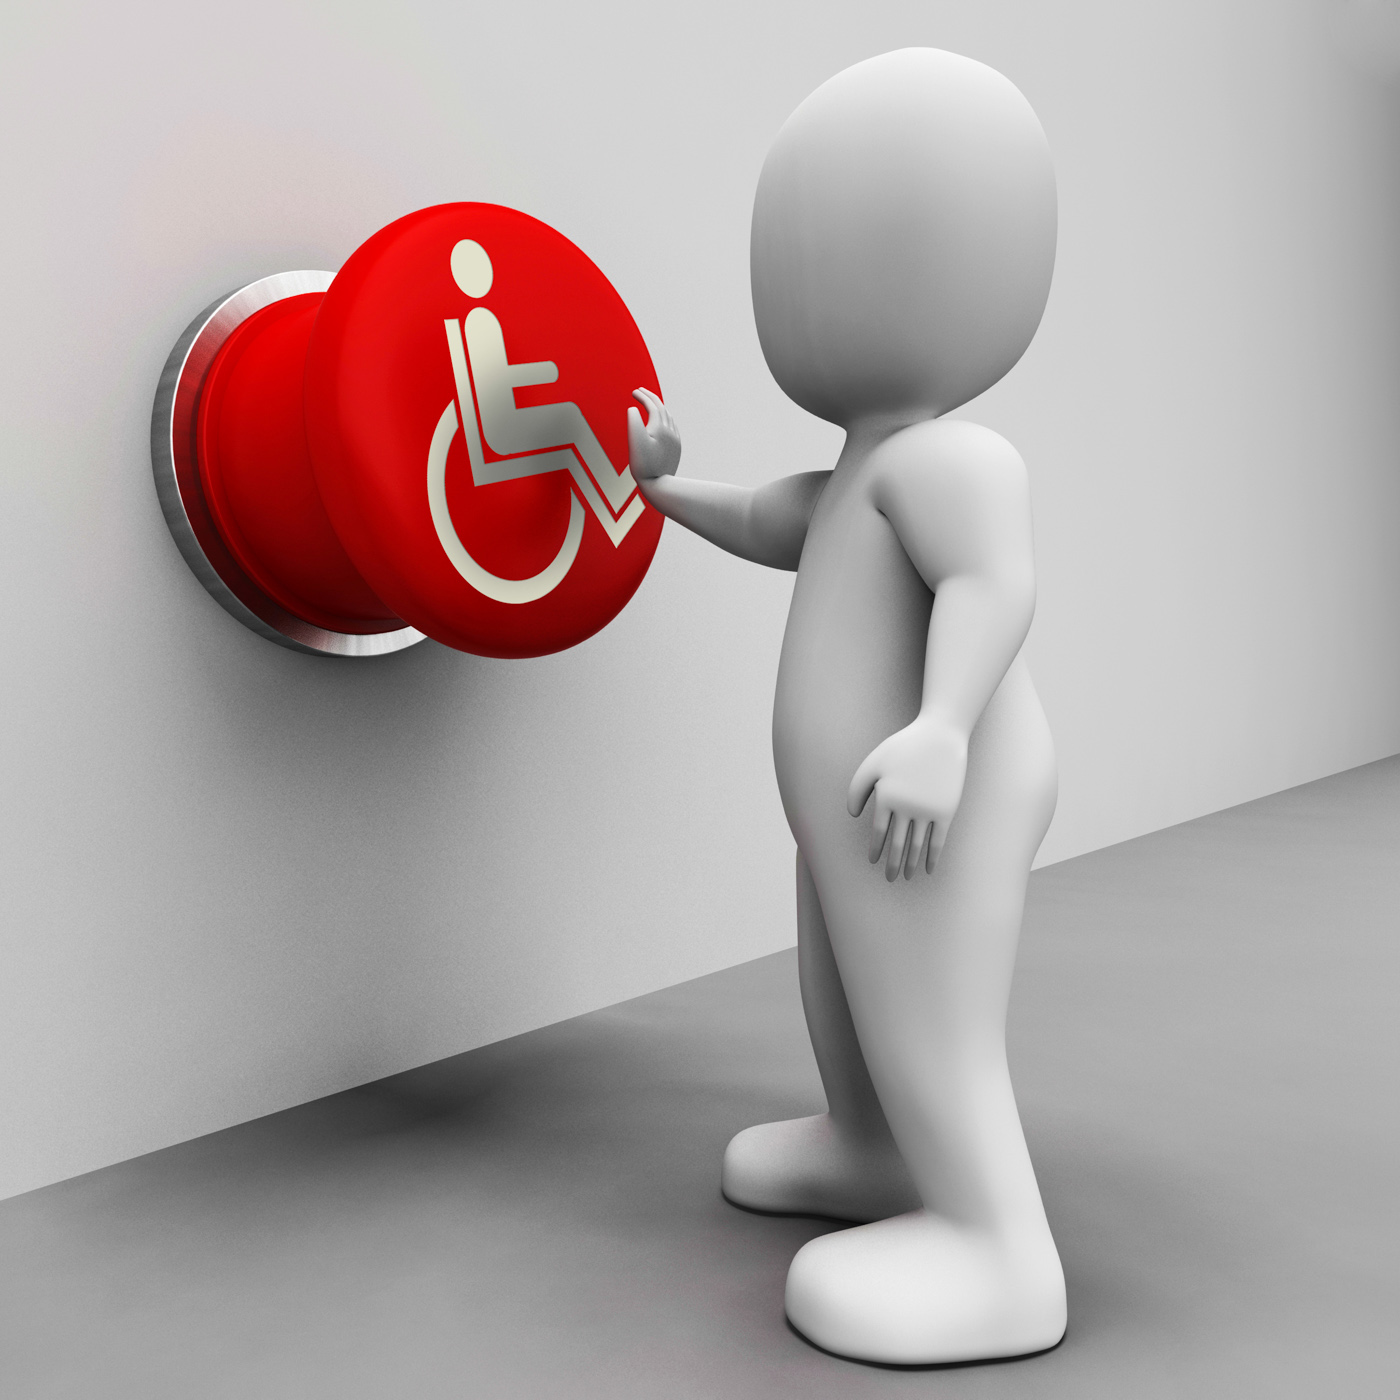 Wheel chair button shows physical disability and immobility photo